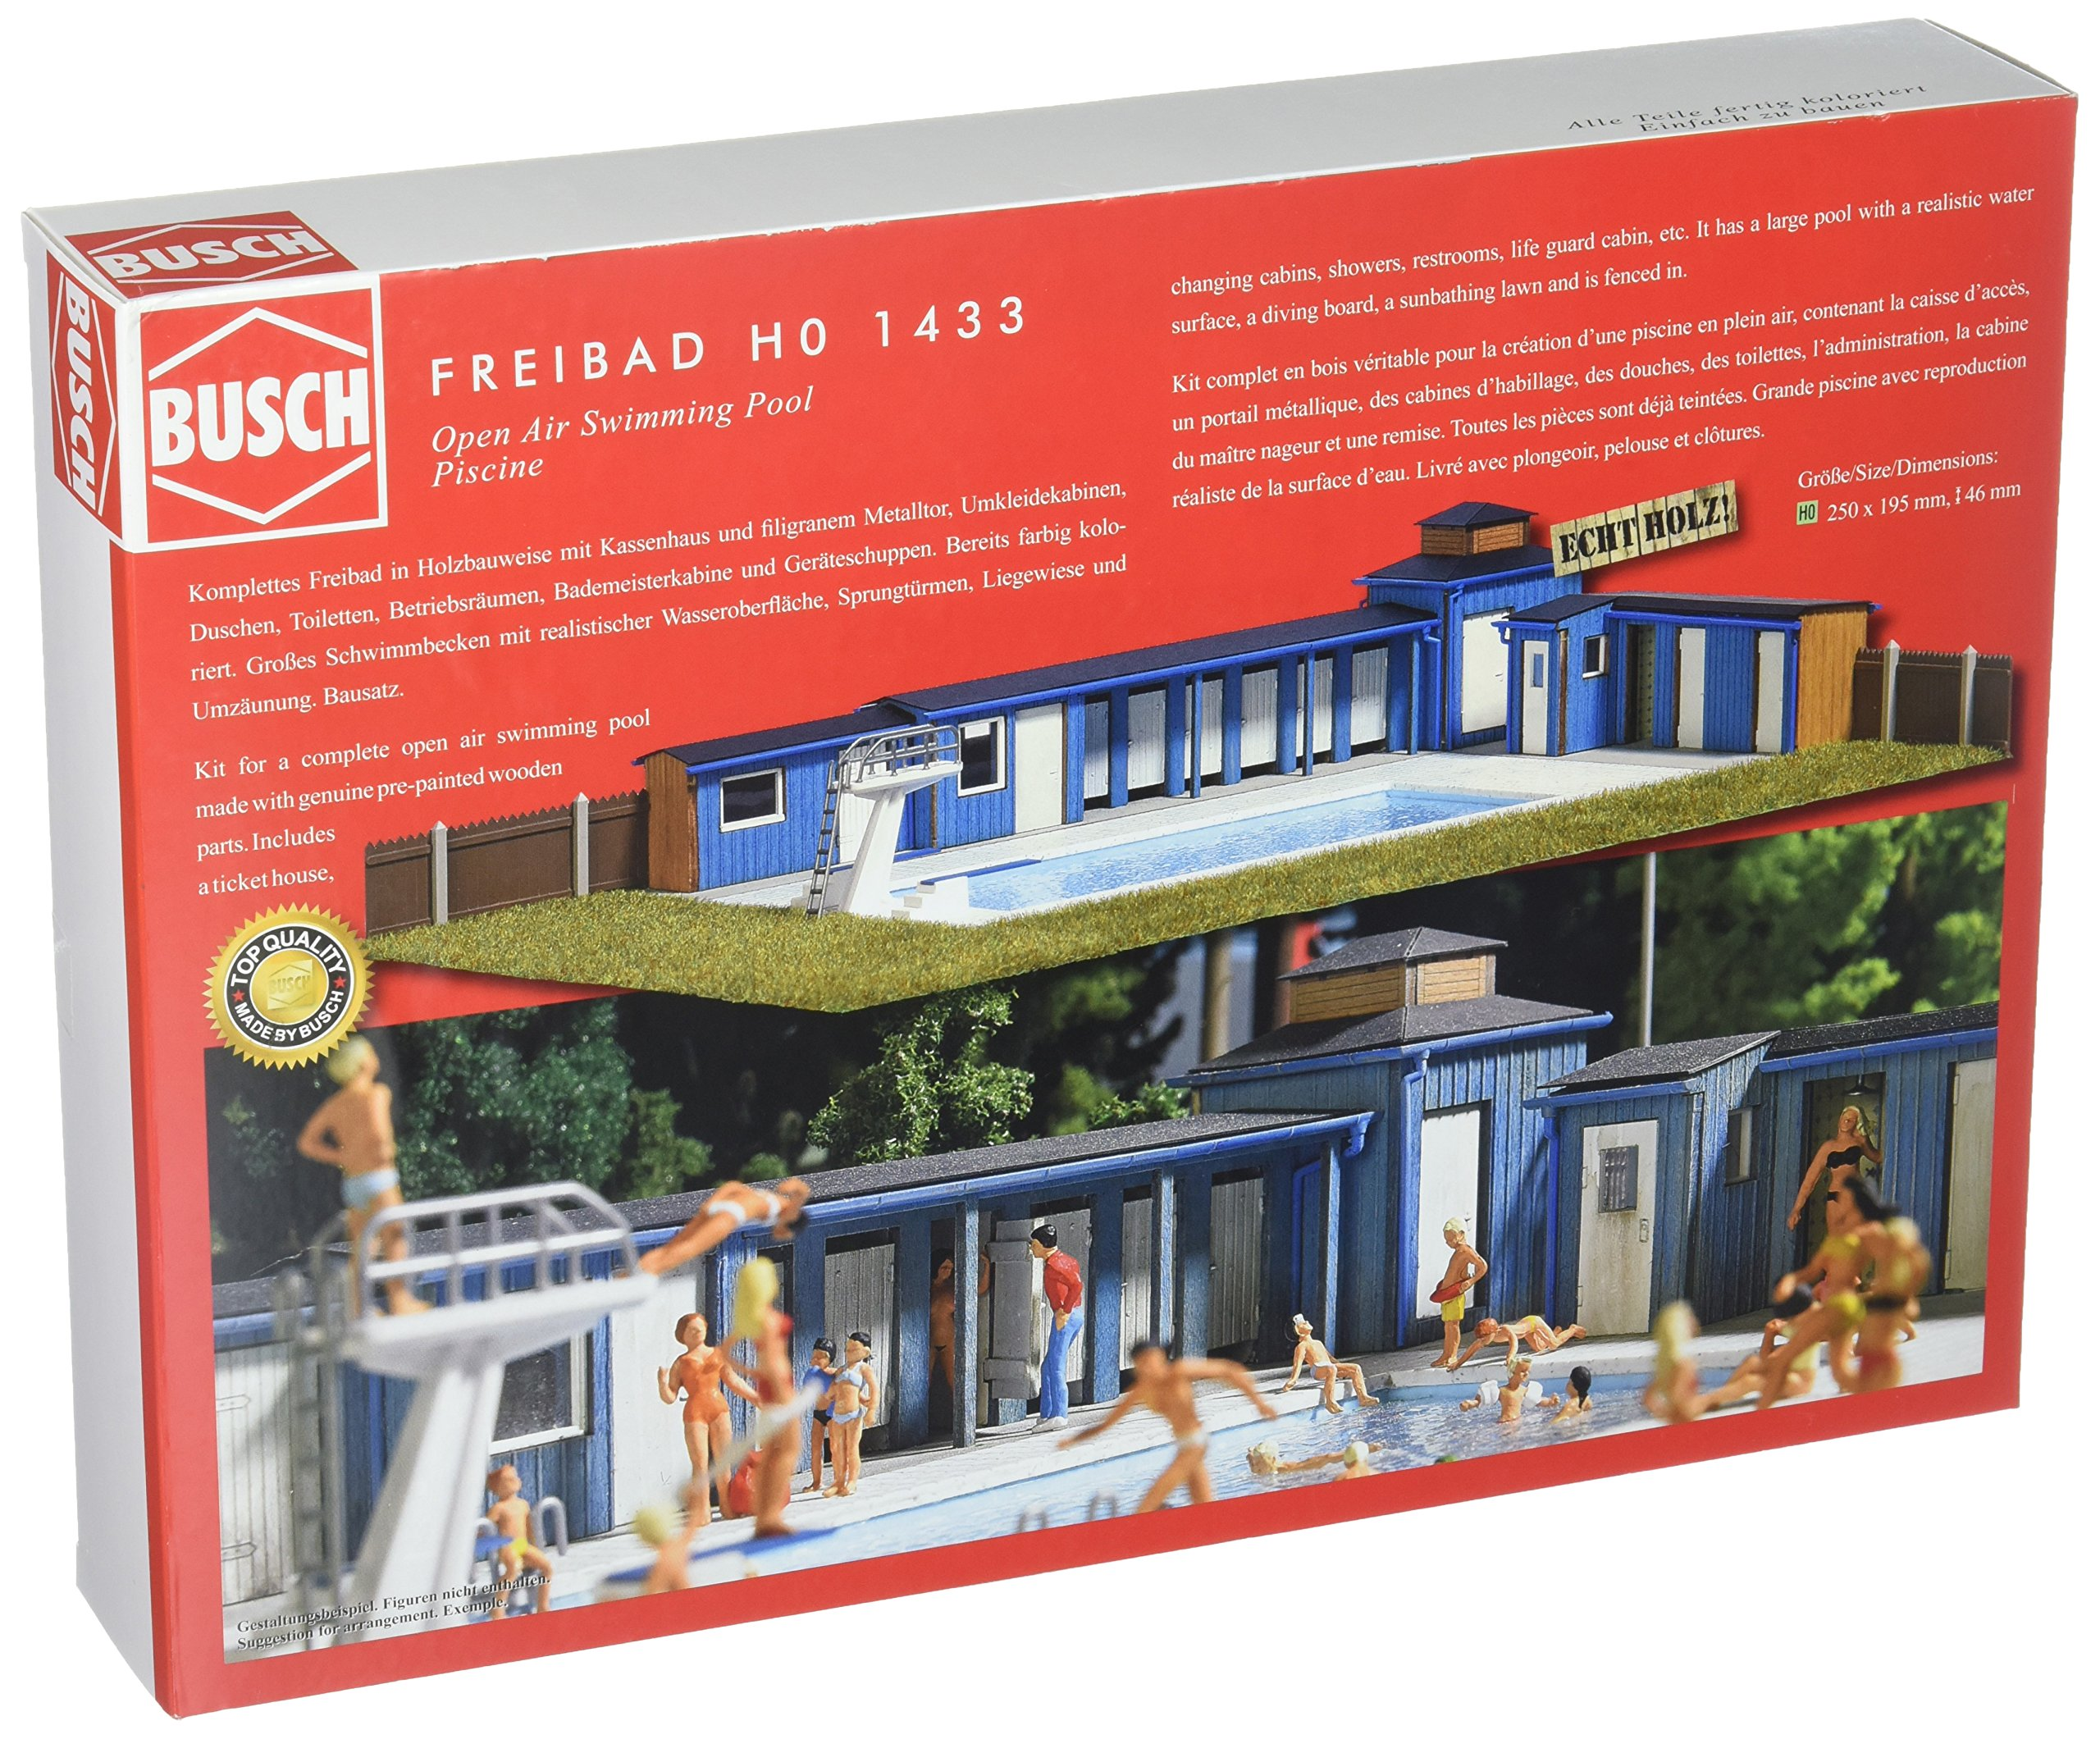 Busch 1433 OpenAir Swimming Pool HO Scale Scenery Kit